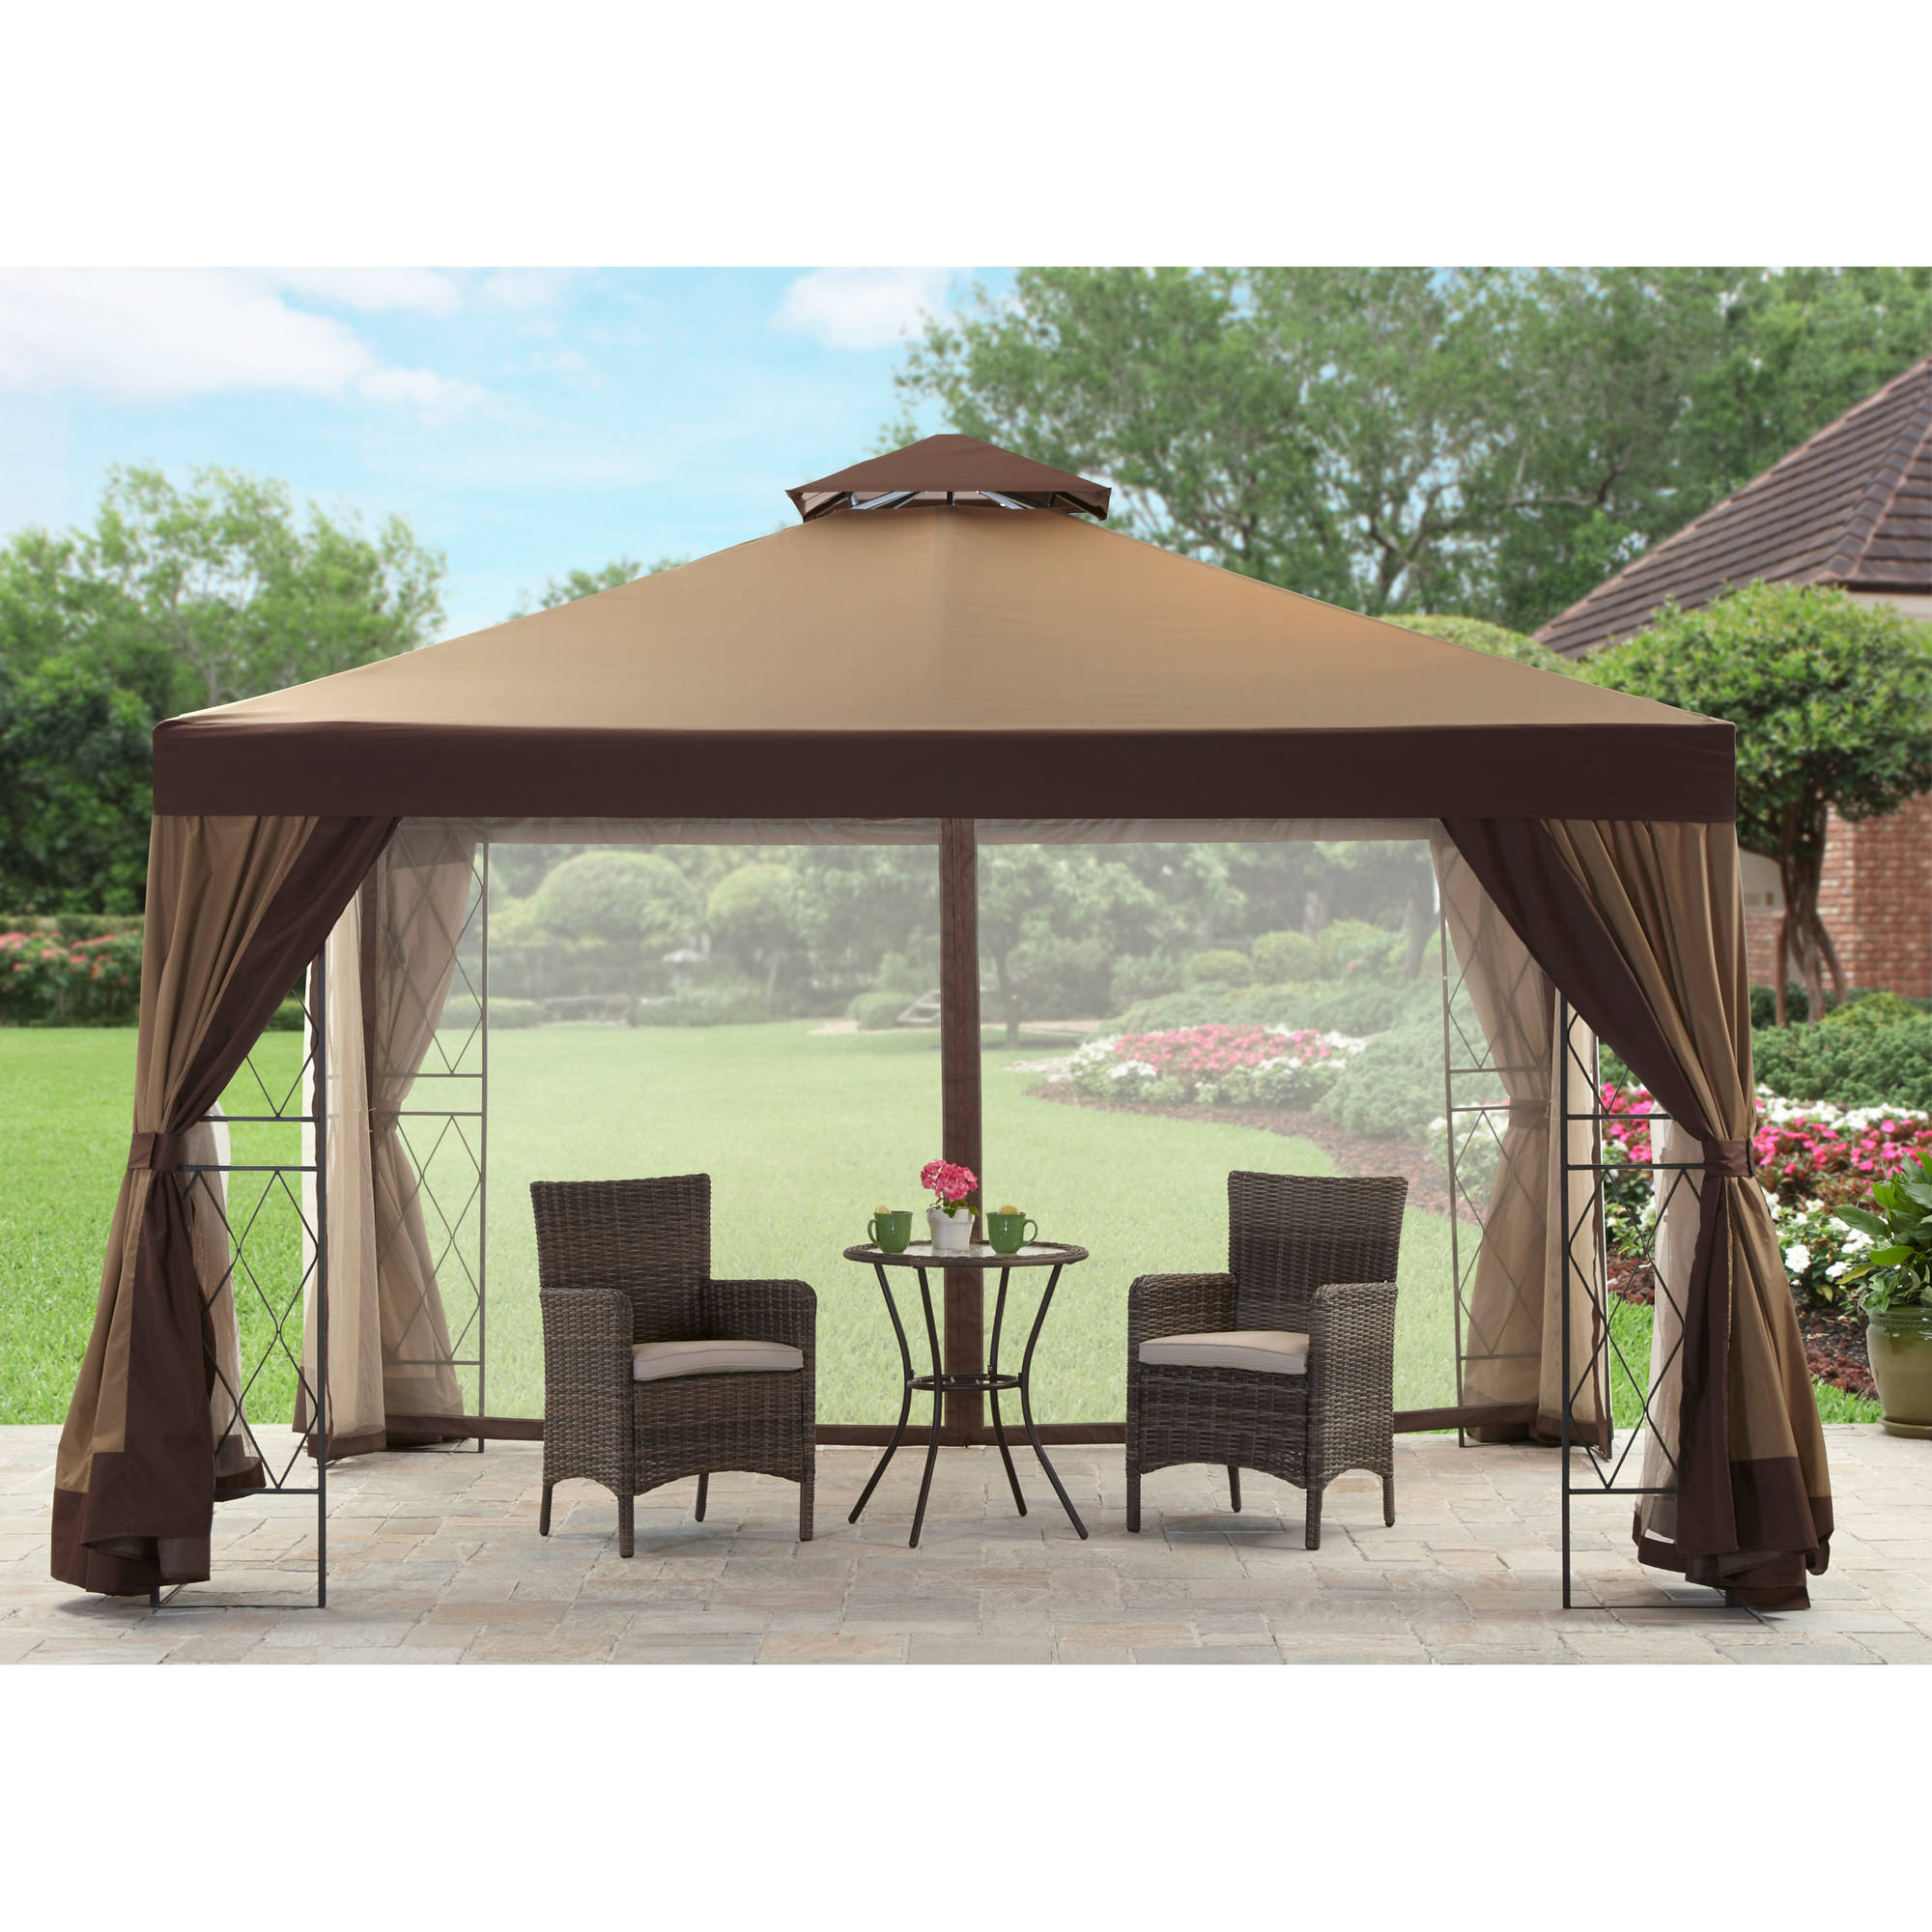 Better Homes & Gardens Kimber Valley Gazebo, 12' x 10'